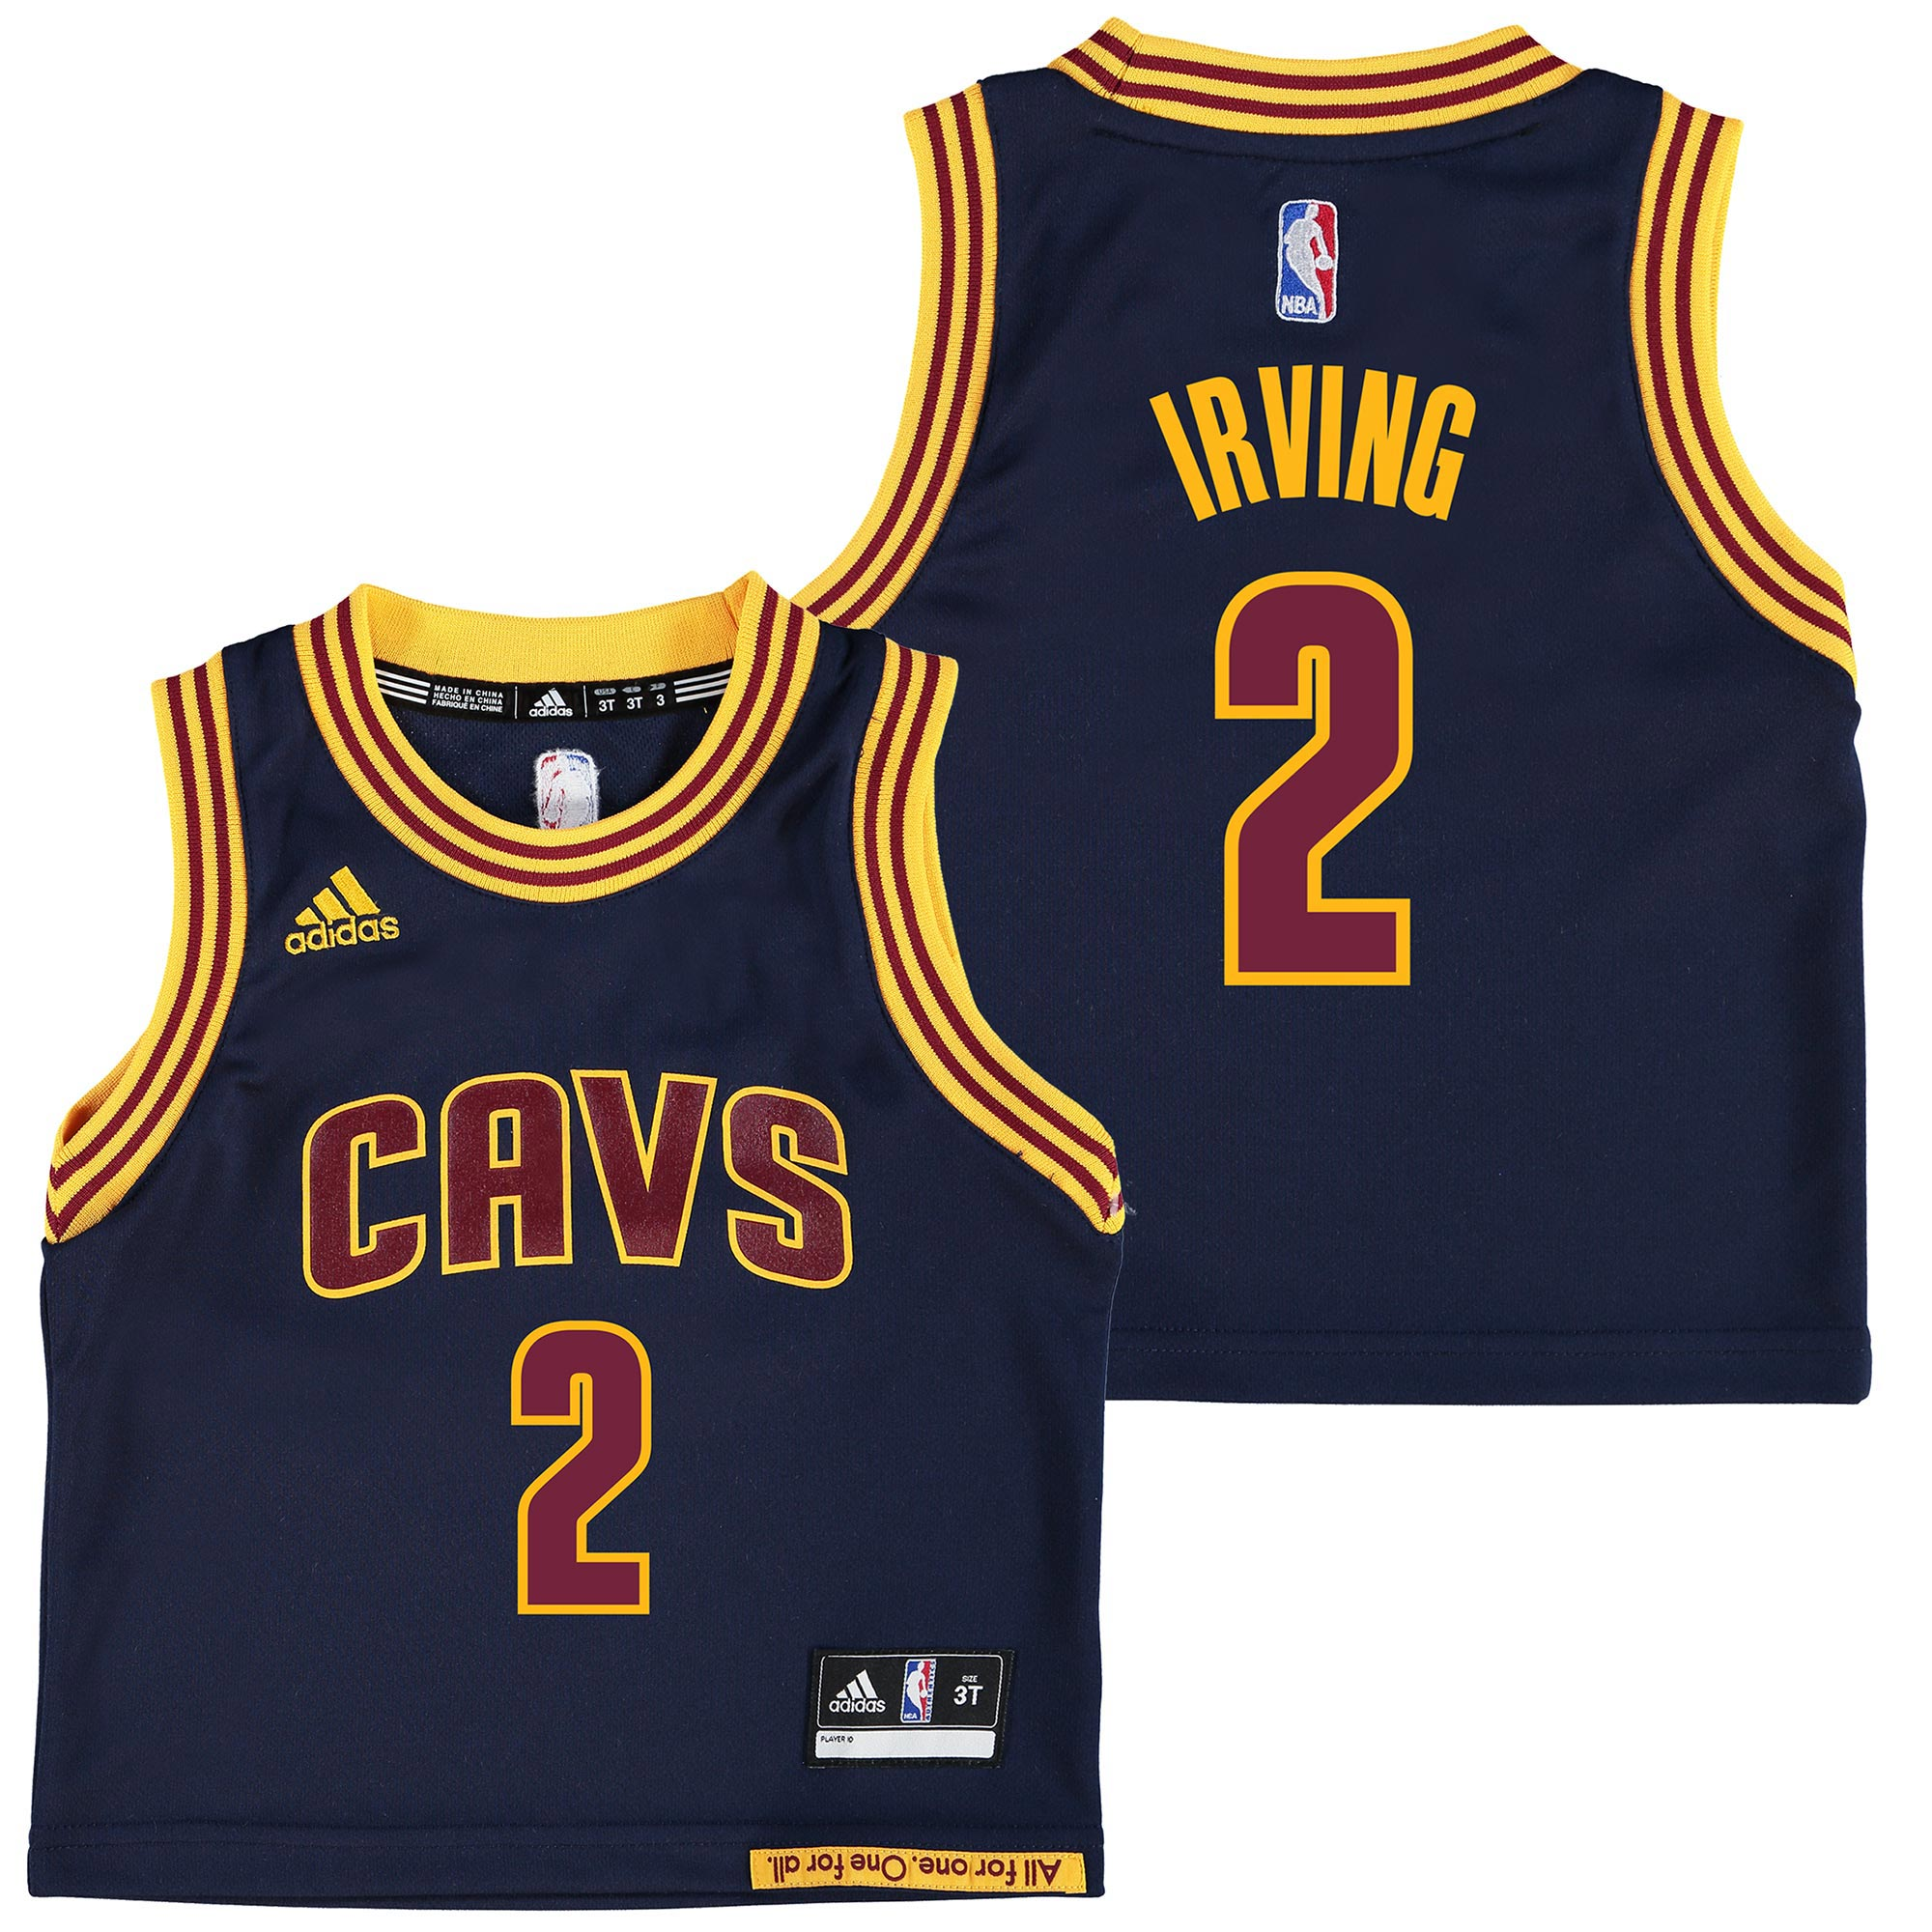 Cleveland Cavaliers Road Alternate Replica Jersey - Kyrie Irving - Tod